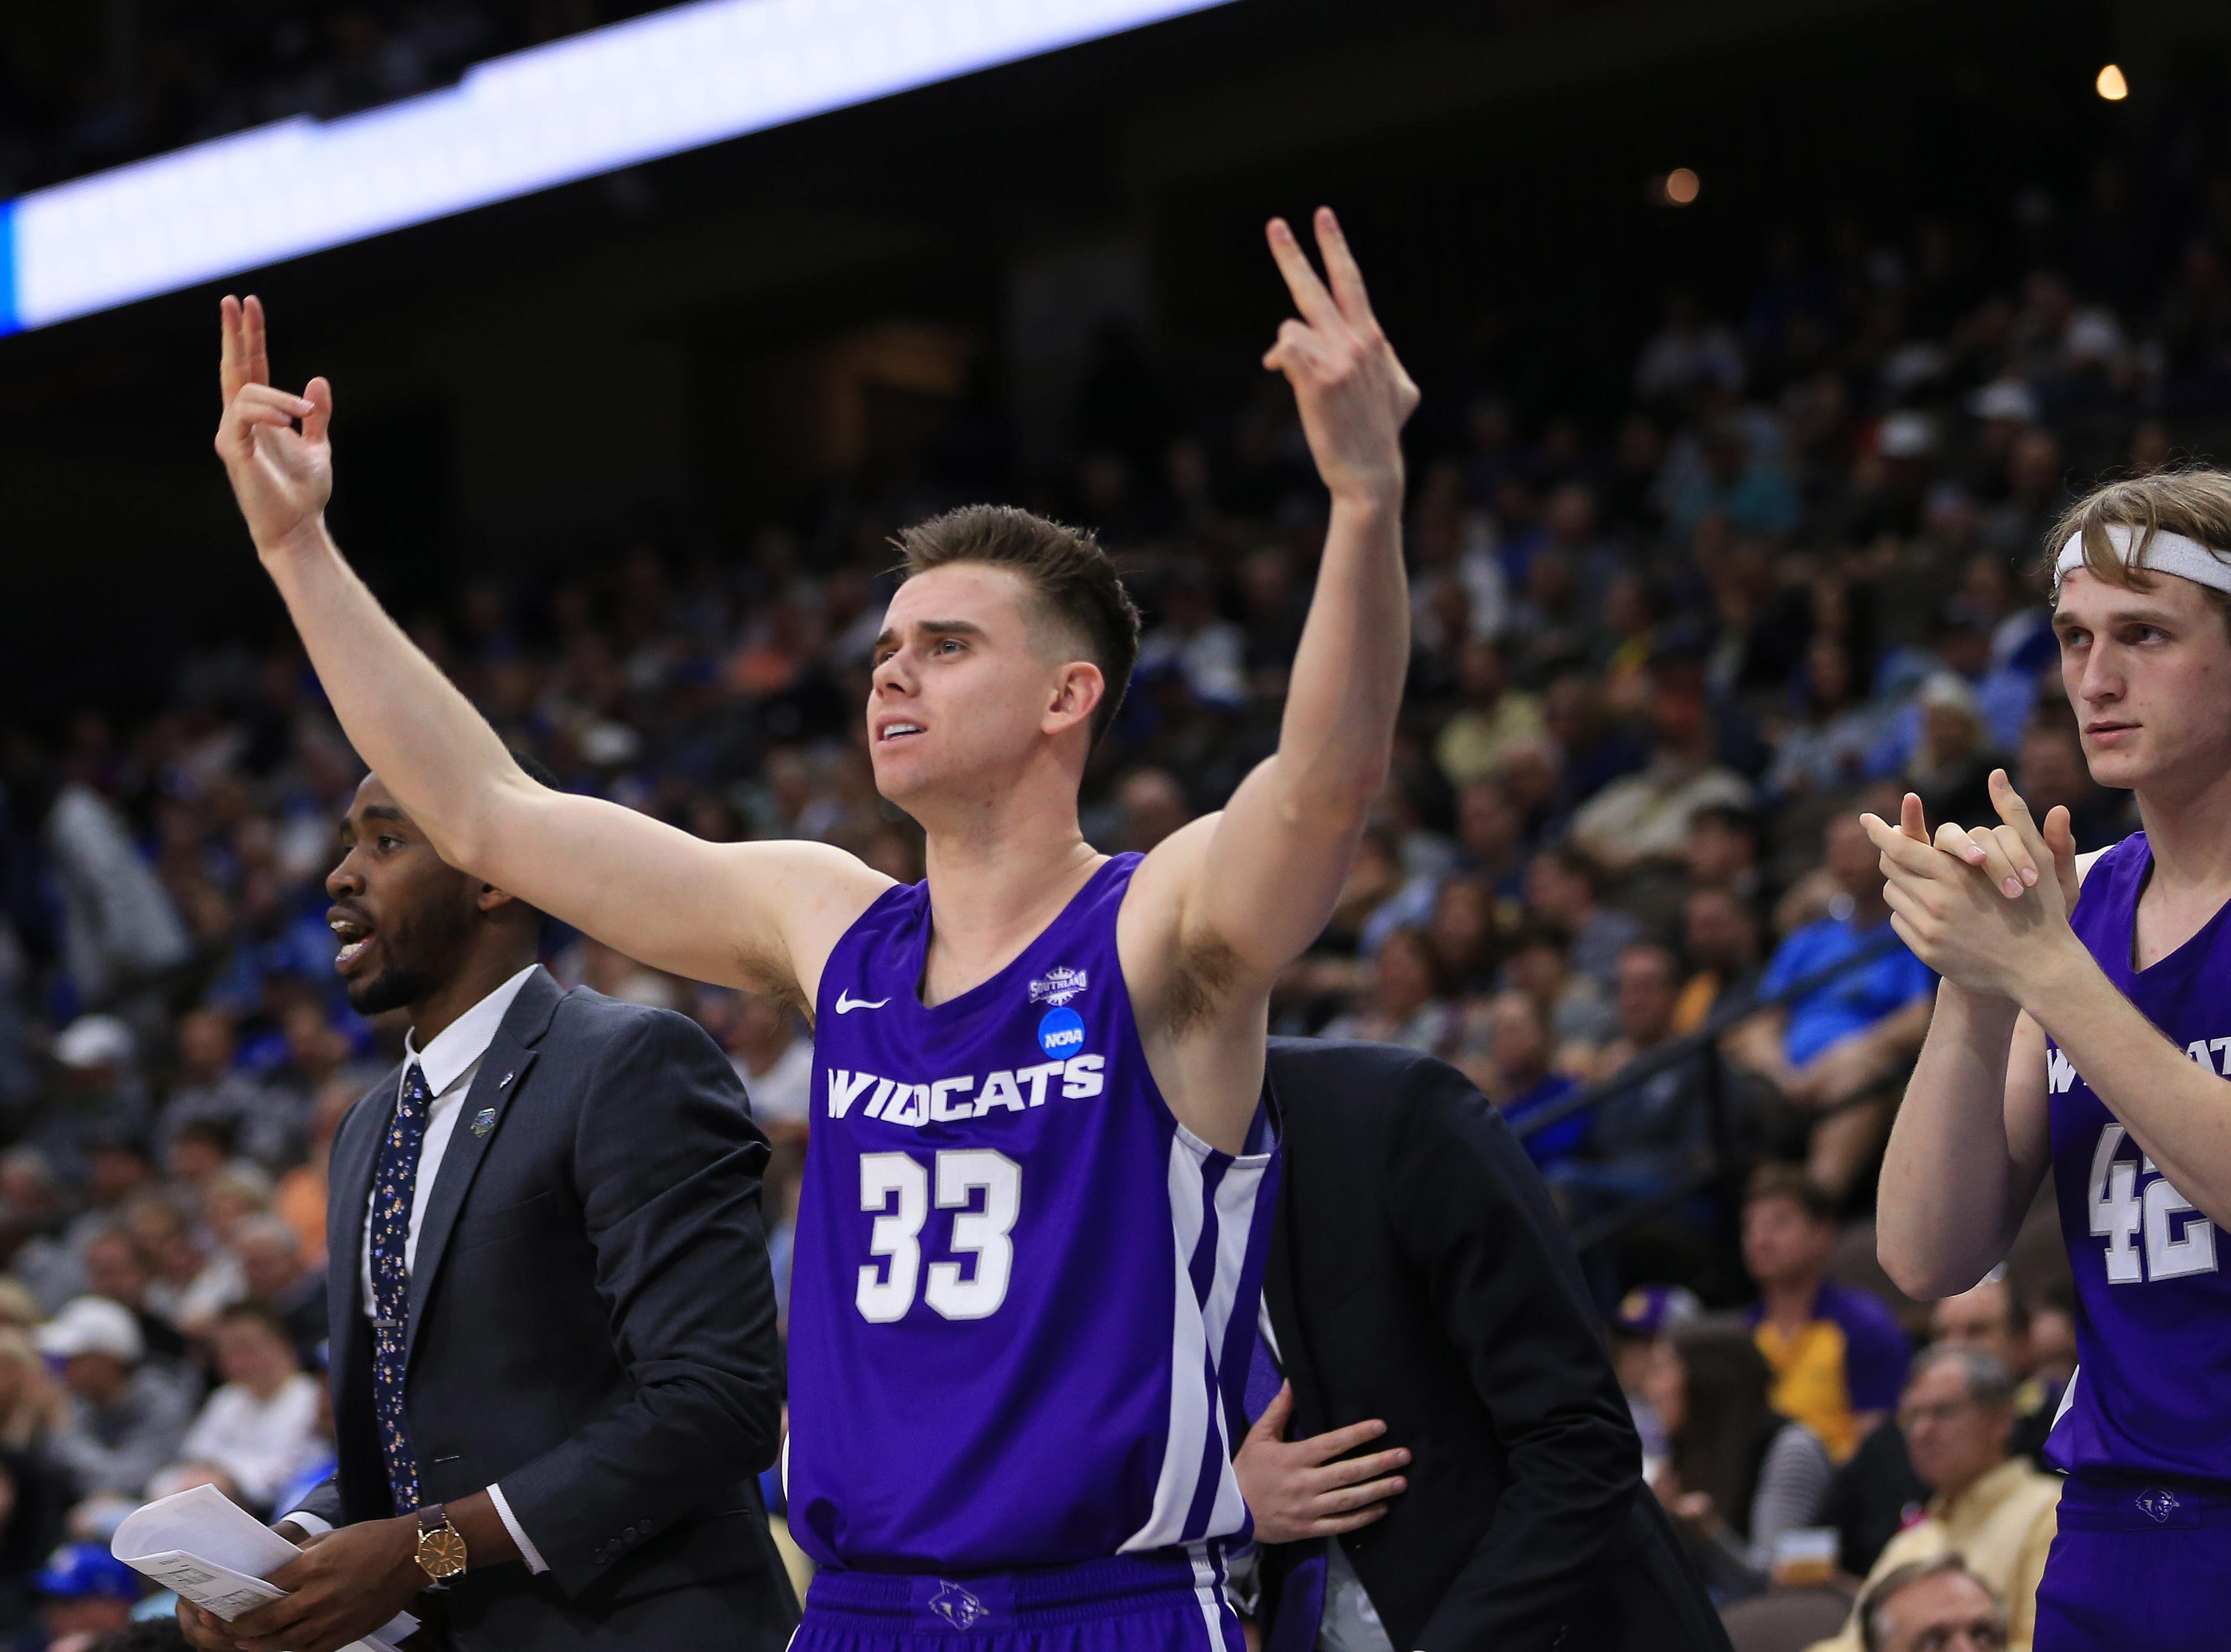 Mar 21, 2019; Jacksonville, FL, USA; Abilene Christian Wildcats guard Paul Hiepler (33) and Abilene Christian Wildcats forward Clay Gayman (42) react on the bench against the Kentucky Wildcats during the first half in the first round of the 2019 NCAA Tournament at Jacksonville Veterans Memorial Arena. Mandatory Credit: Matt Stamey-USA TODAY Sports